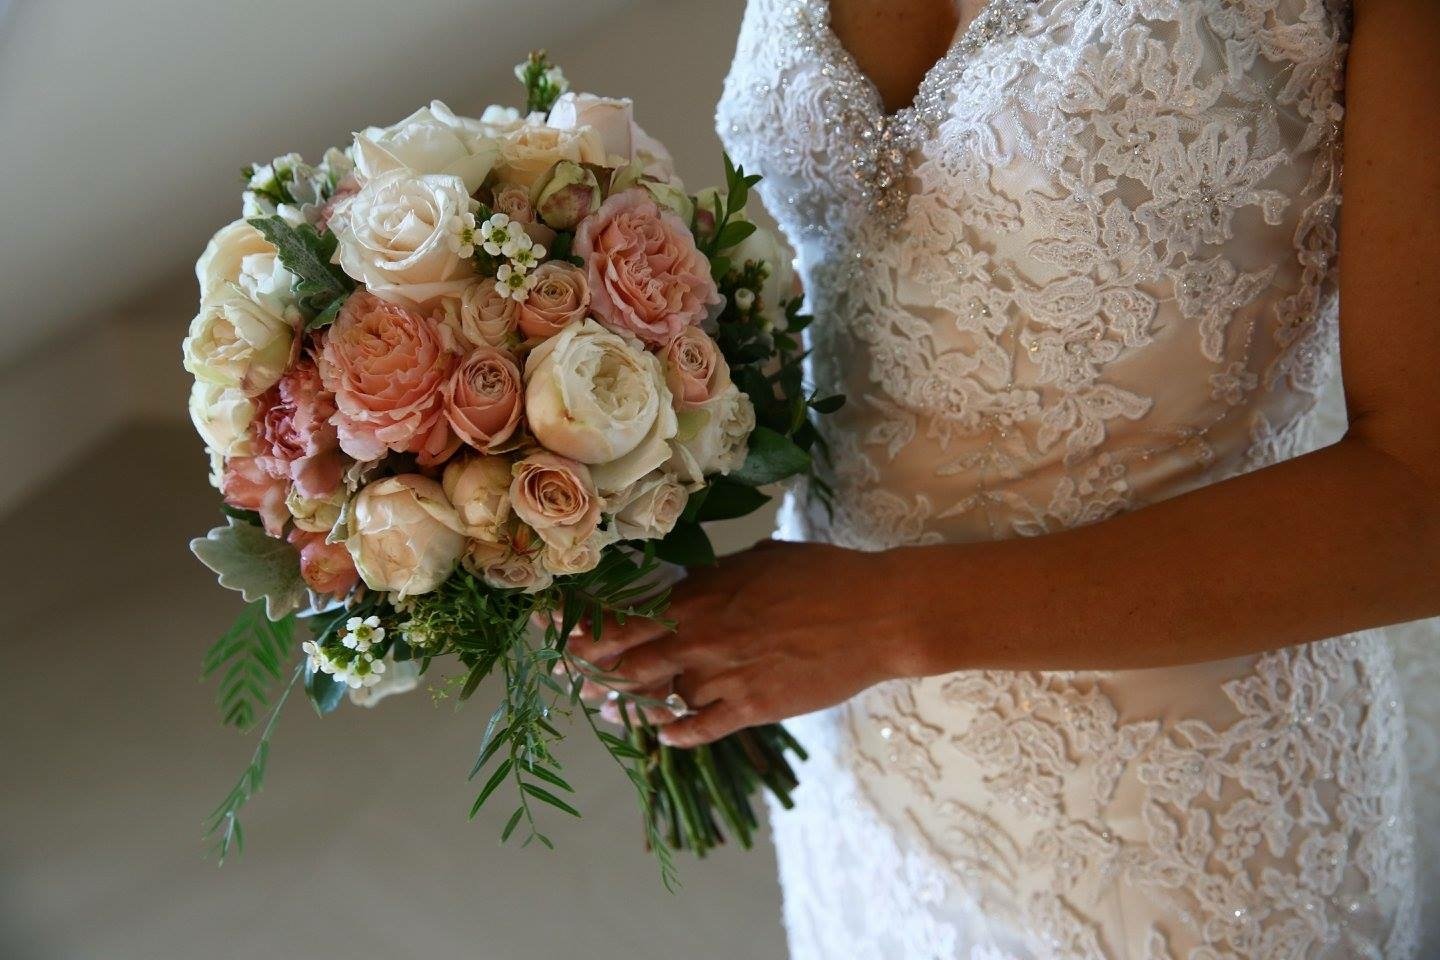 Bridal bouquet-round posy style